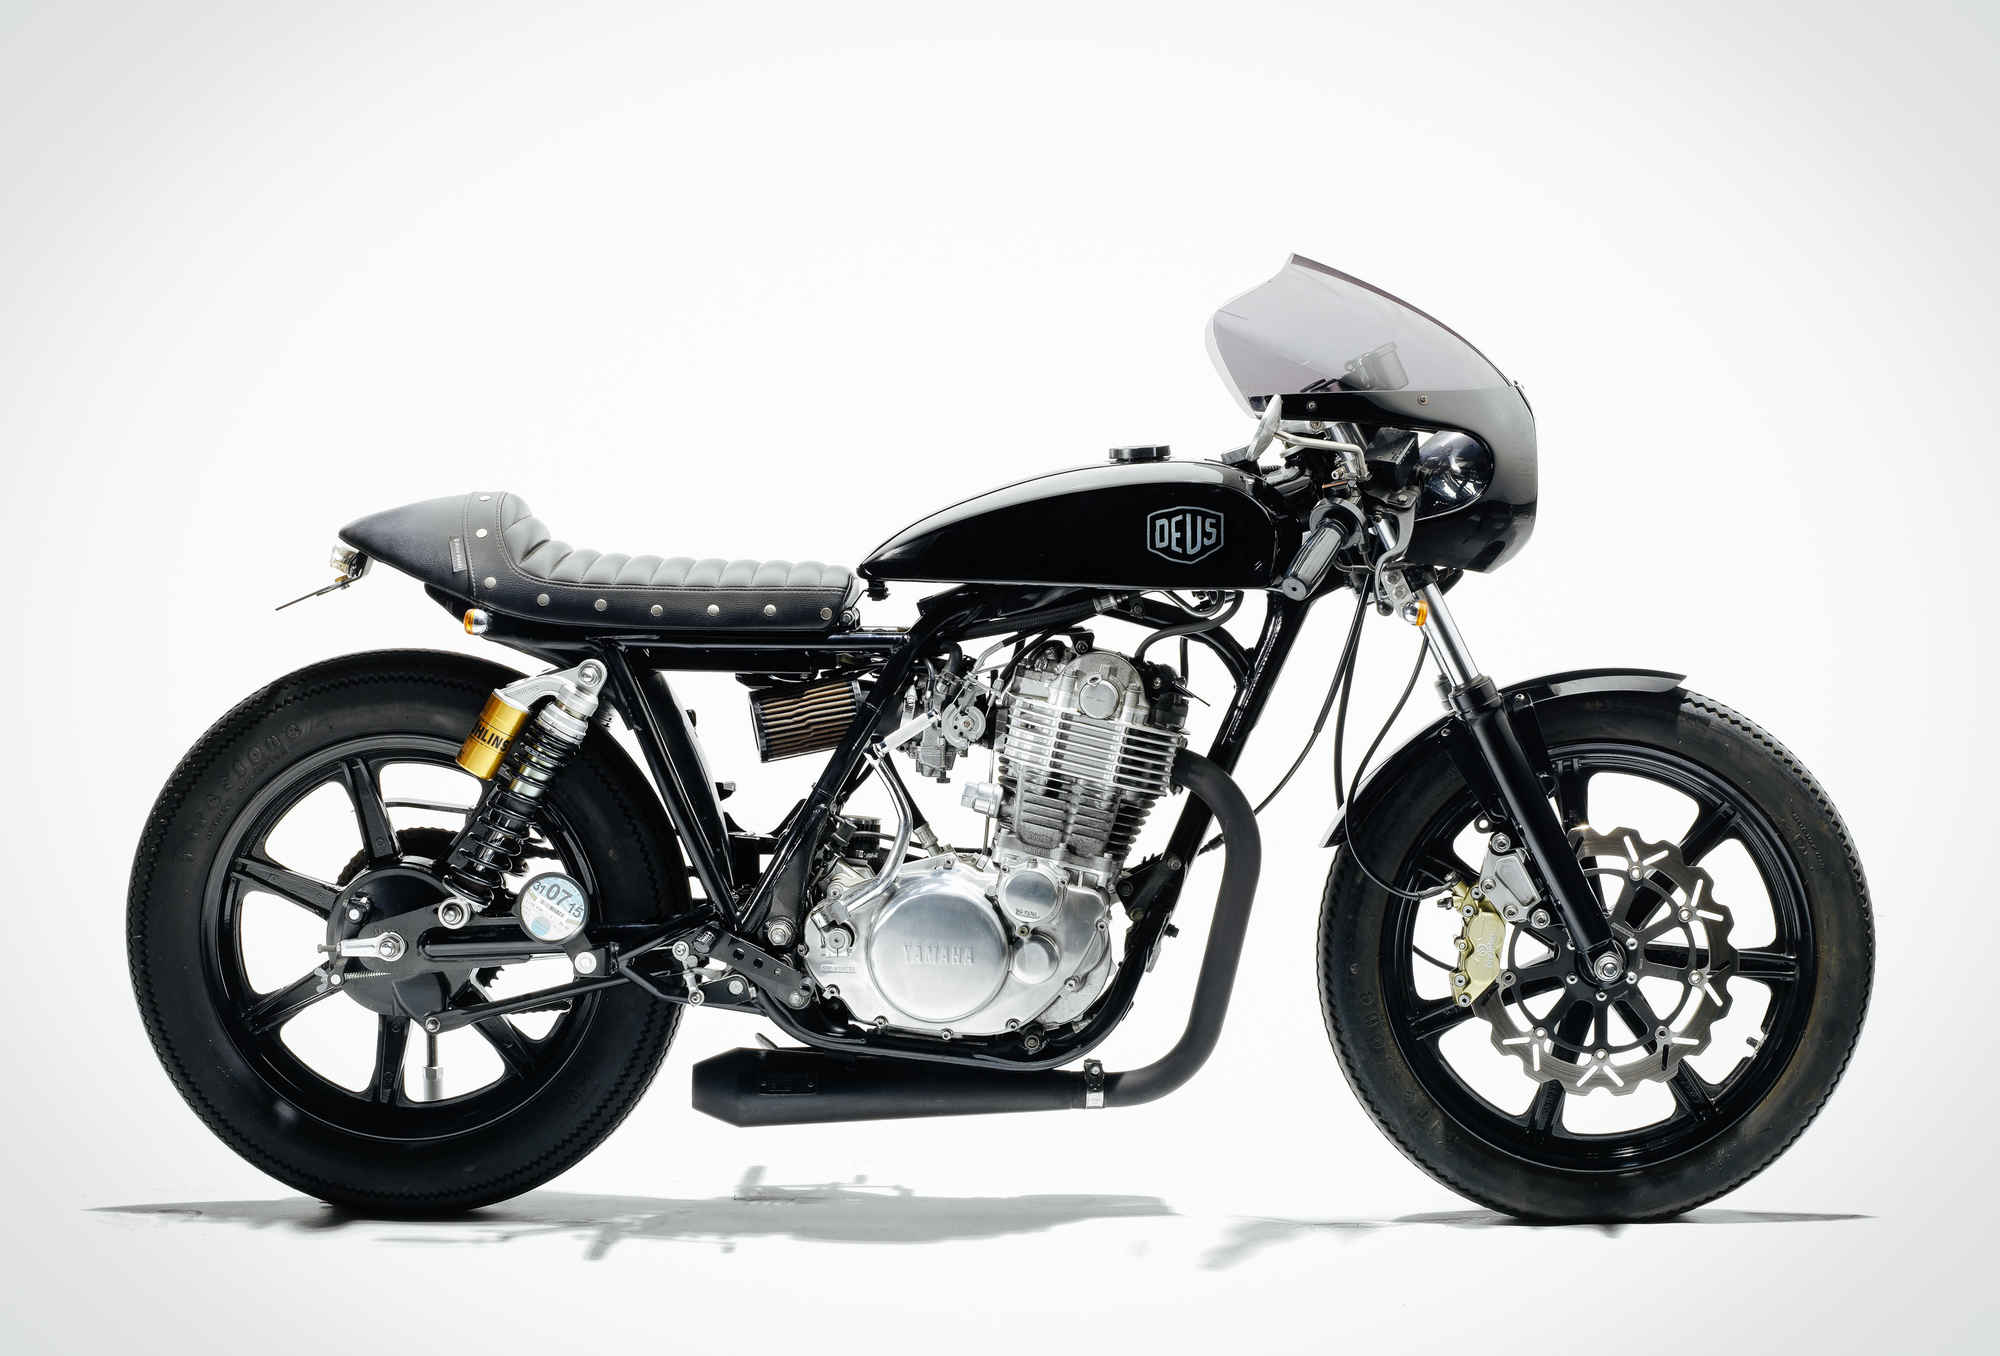 2010 Yamaha SR400 'Grievous Angel' by Deus Ex Machina